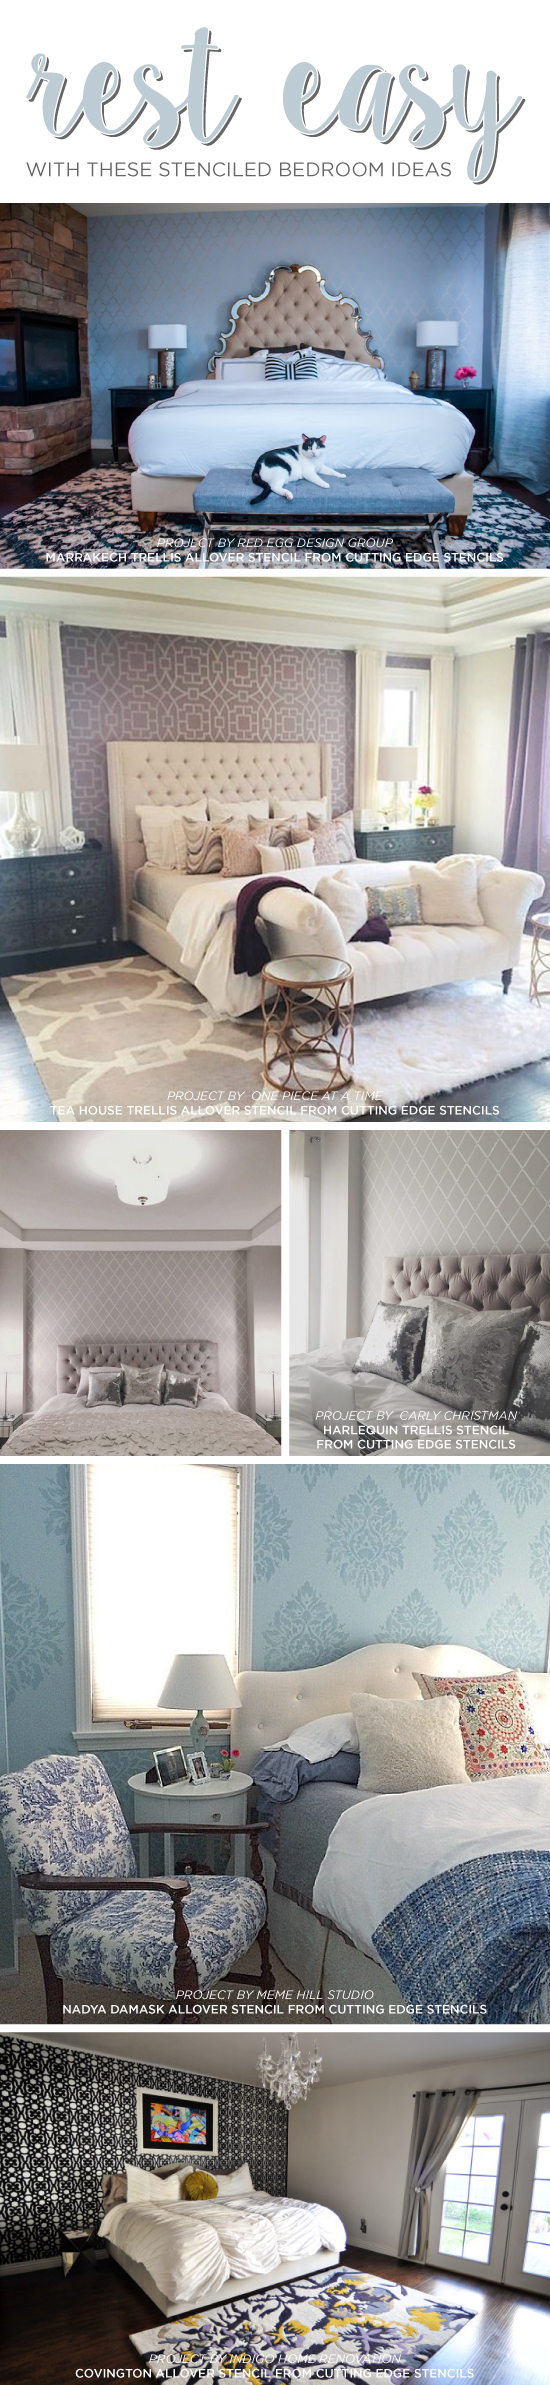 Rest Easy With These Stenciled Bedroom Ideas Model Home Bedroom Design Html on small house bedroom design, brick wall bedroom design, nursing home bedroom design, living room bedroom design, townhouse bedroom design, hotel bedroom design, interior design, hunting lodge bedroom design, luxury bedroom design, custom bedroom design, condominium bedroom design, mobile home bedroom design, office bedroom design,